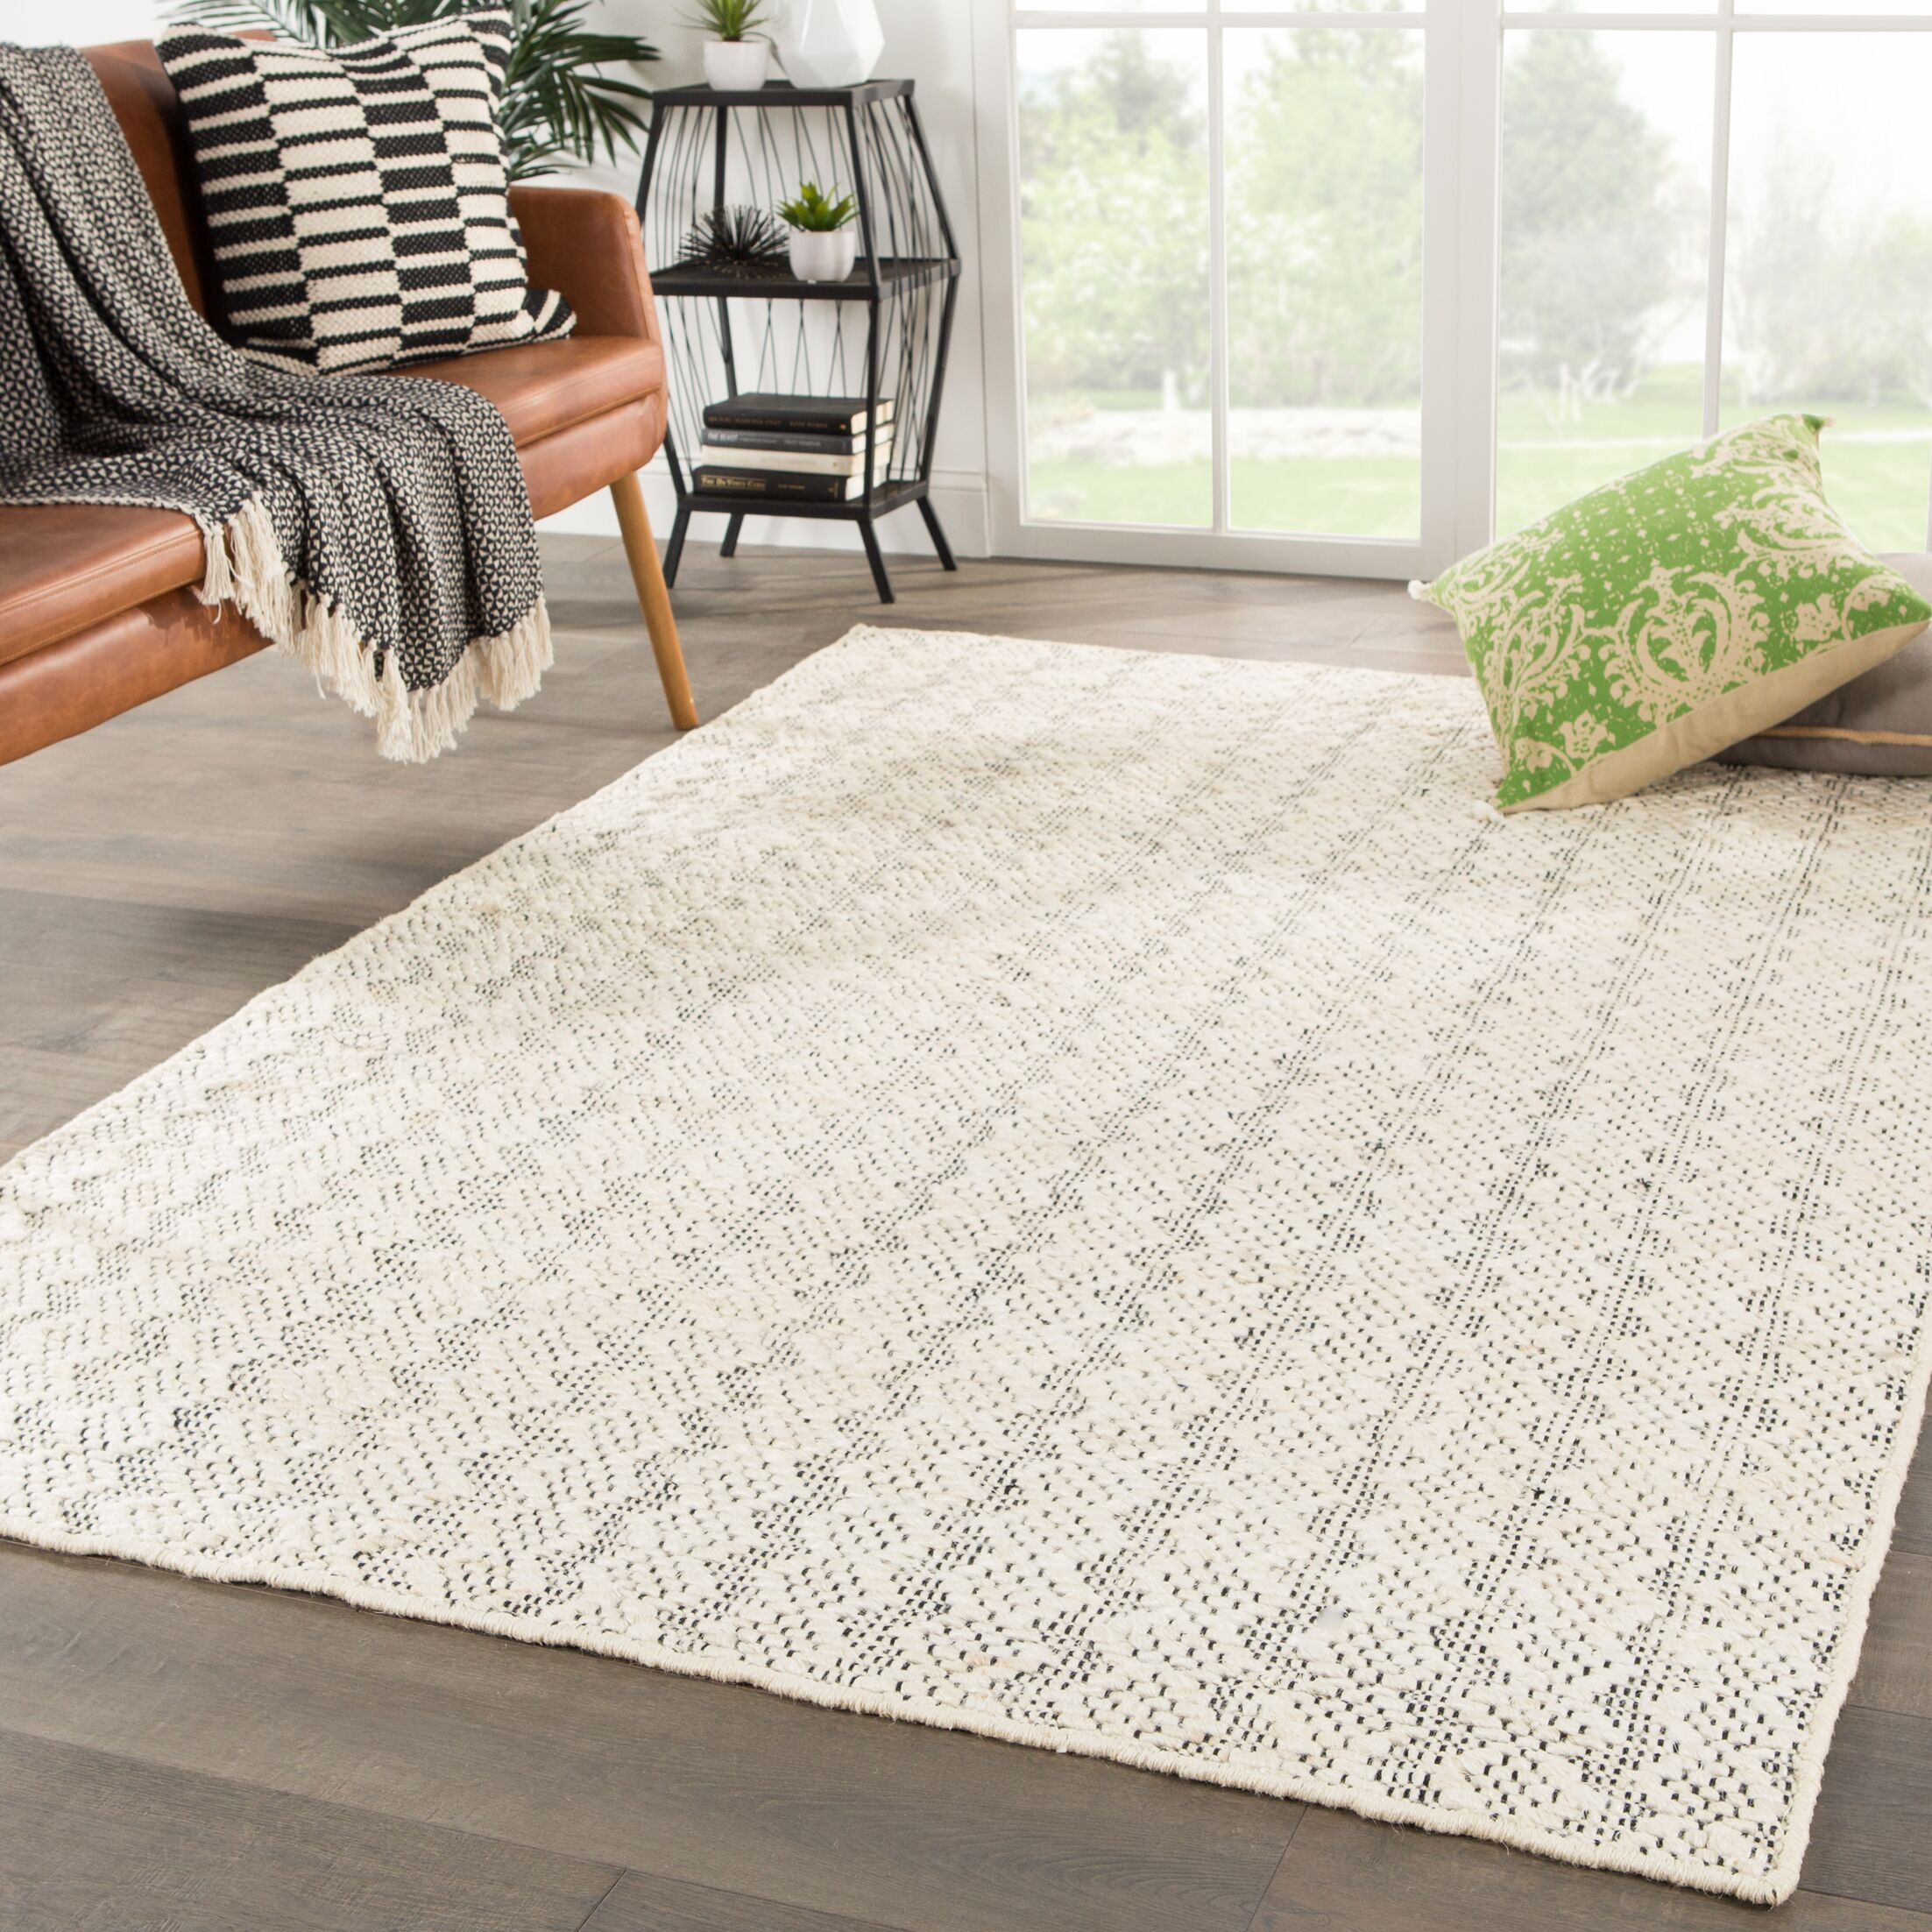 New Fairfield Natural Handwoven Flatweave Ivory Area Rug Rug Size: Rectangle 7'10